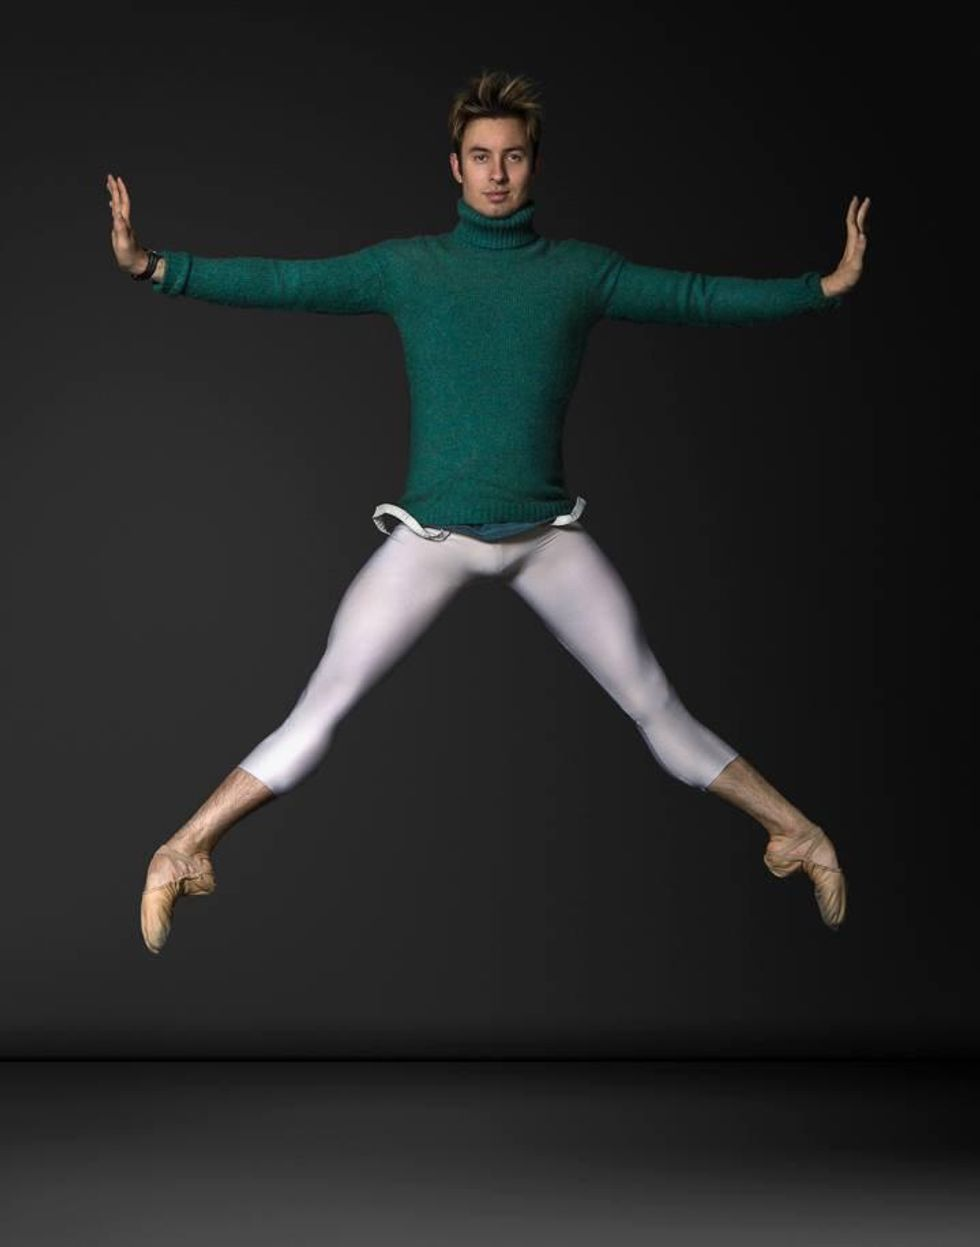 A white male dancer in a green turtleneck sweater, calf-length white tights and tan ballet slippers jumps in second position with his arms out to the side and hands flexed.